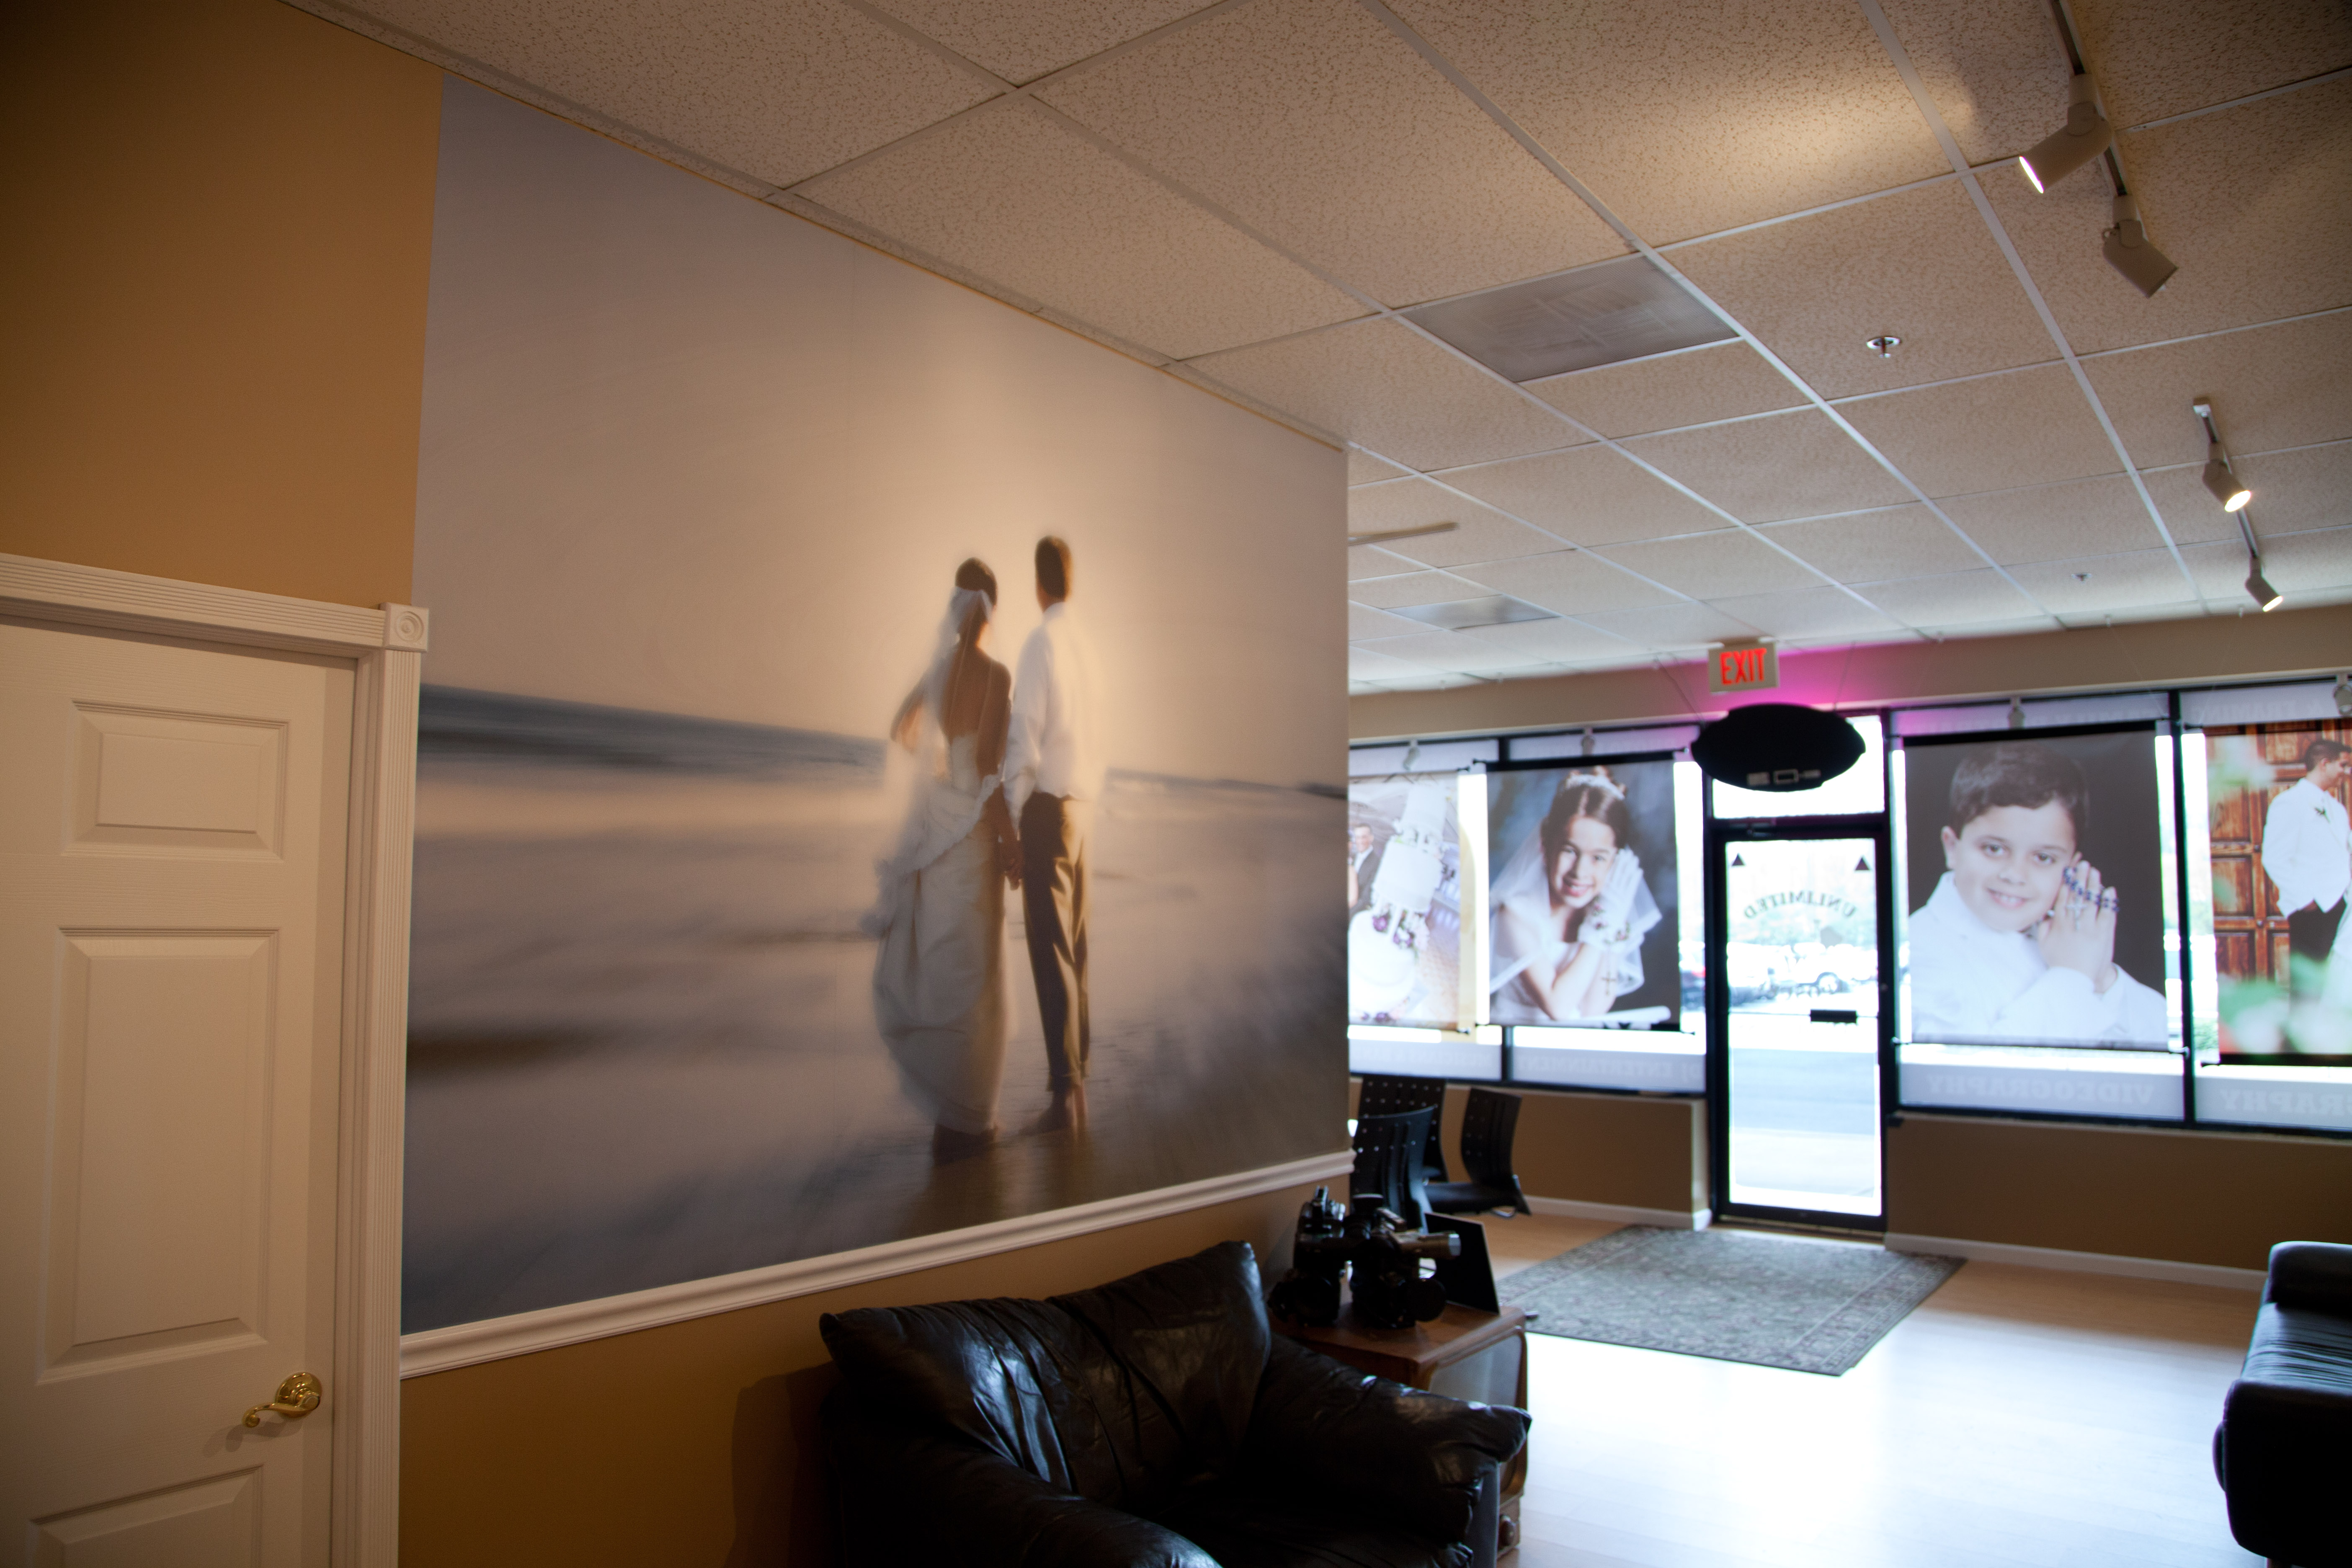 Wall Mural And Window Banners